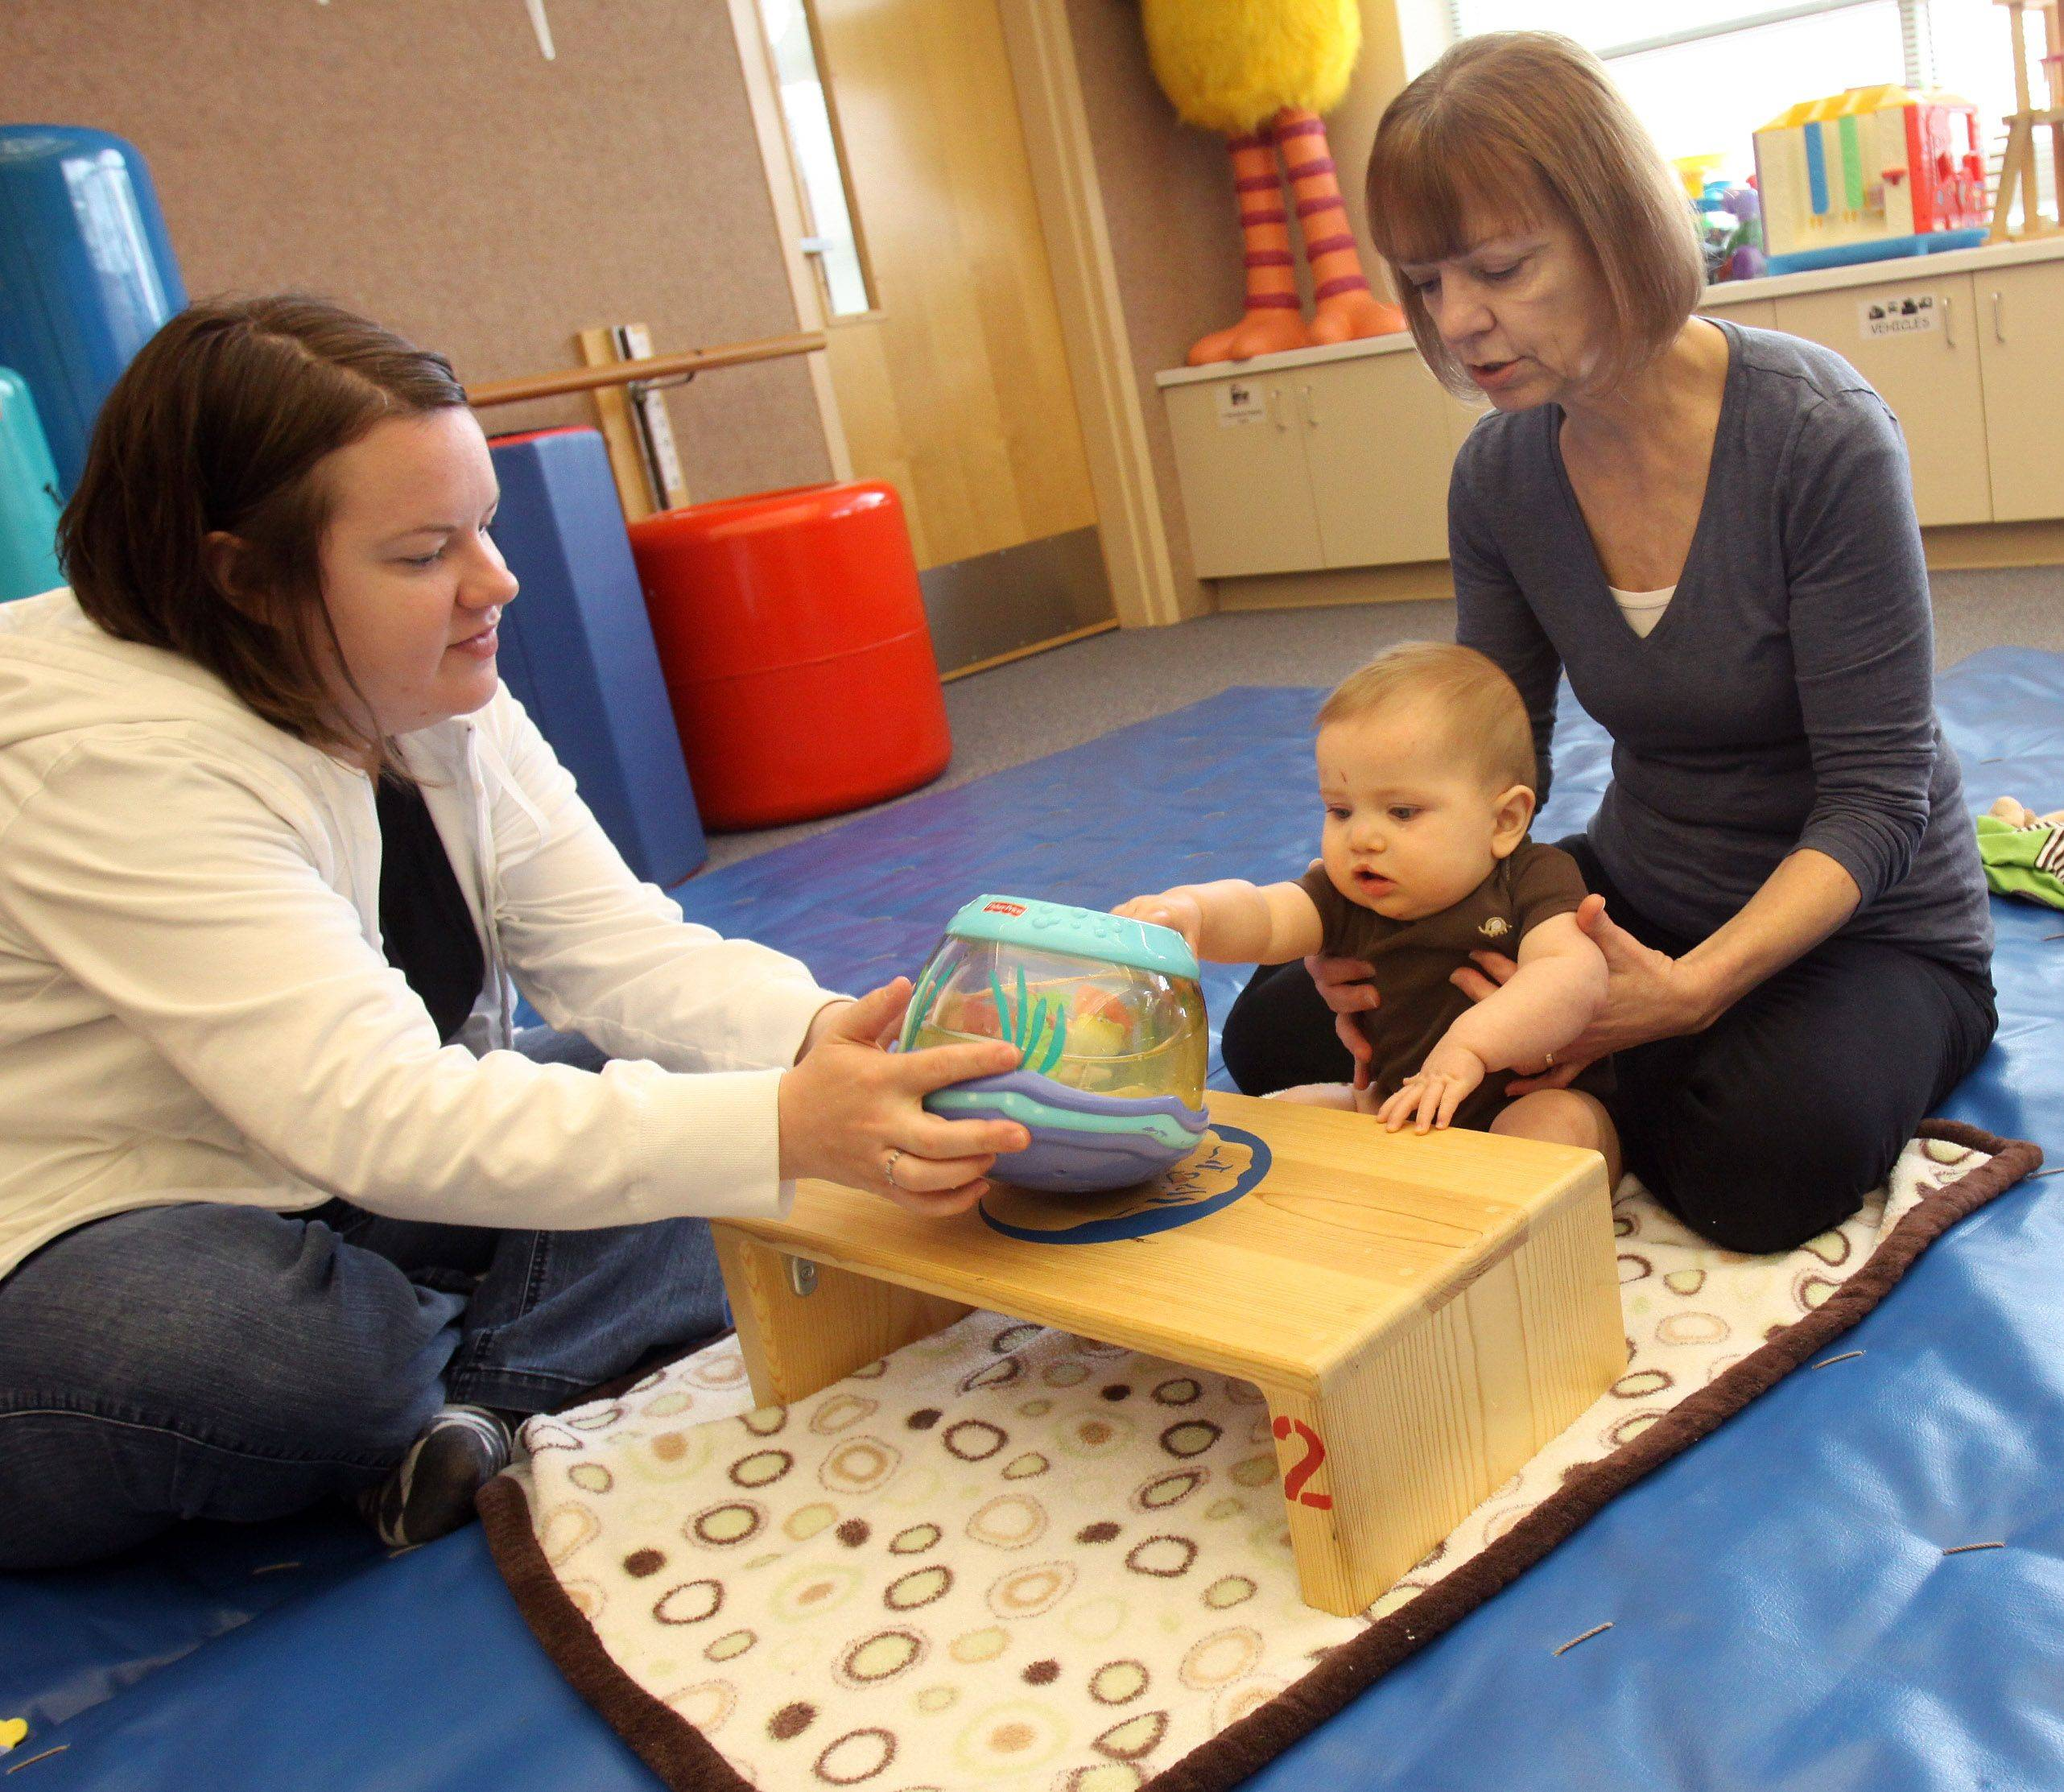 Charlie Feuerborn, 9 months, works with his mom, Allison, left and his therapist Kathe Monley at Easter Seals in Villa Park. Charlie participates in the Make the First Five Count program, which tries to identify potential developmental problems so young children can get therapy.